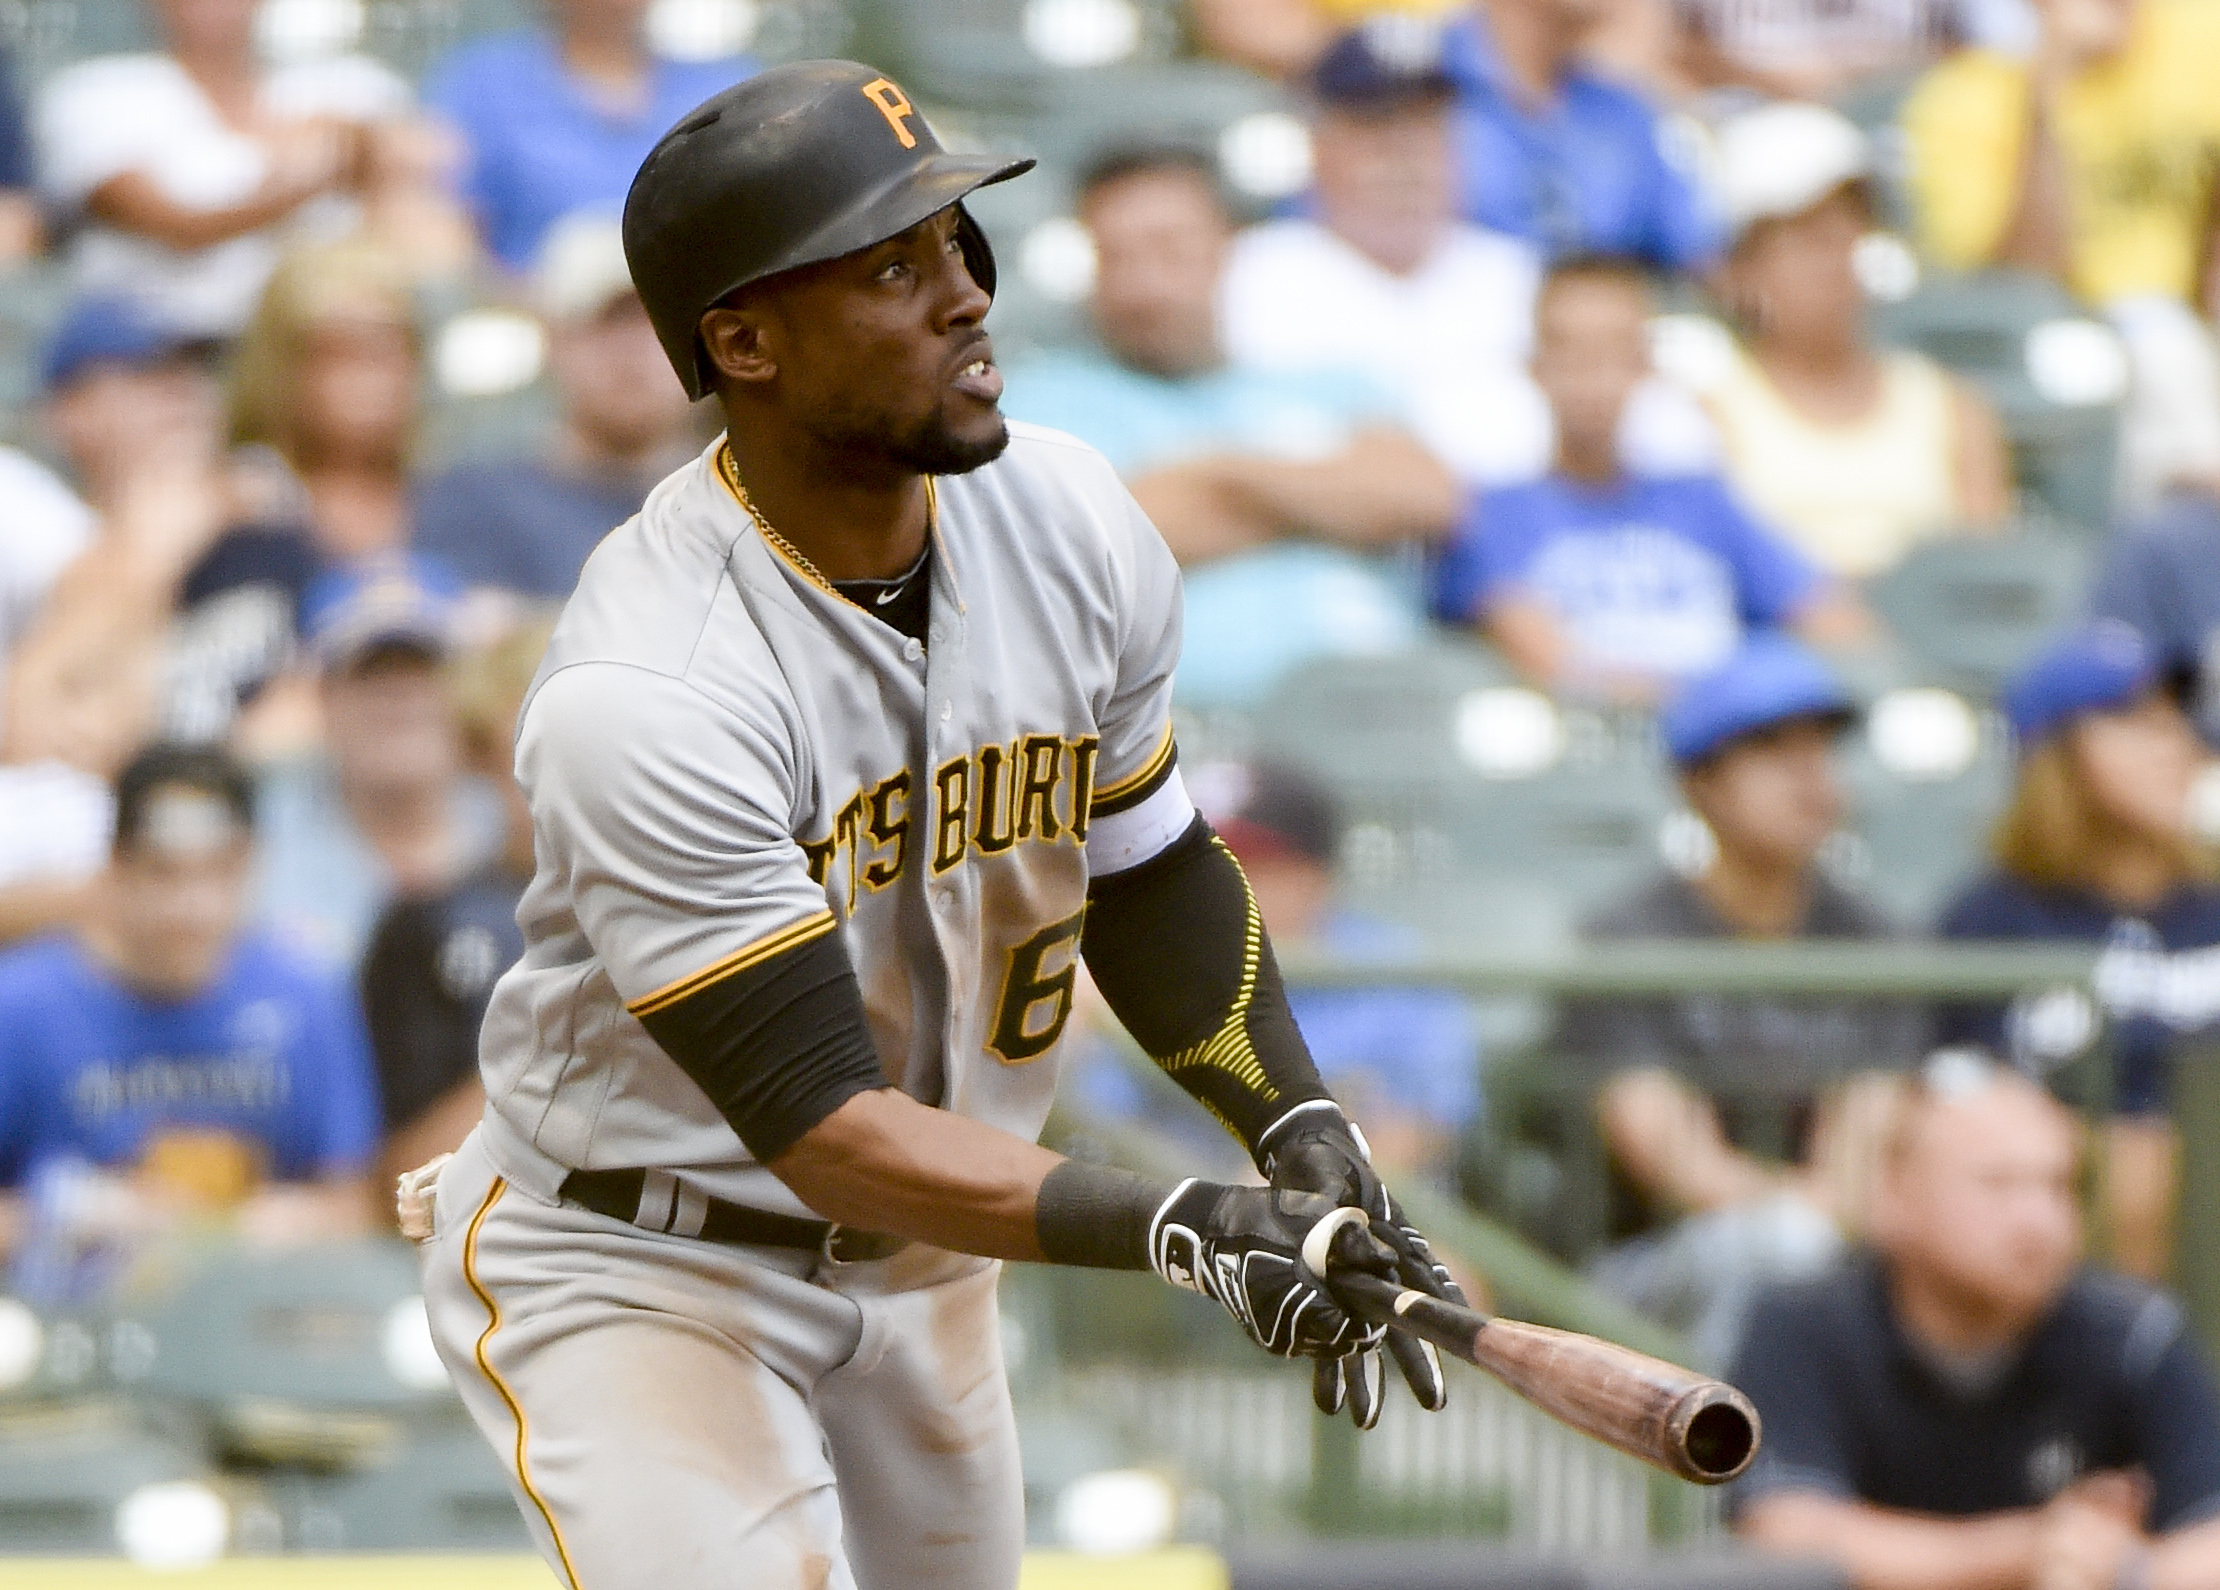 Pittsburgh Pirates' Starling Marte watches after hitting a solo home run against Milwaukee Brewers pitcher Carlos Torres during the eighth inning of a baseball game, Sunday, Aug. 28, 2016, in Milwaukee. (AP Photo/Benny Sieu)